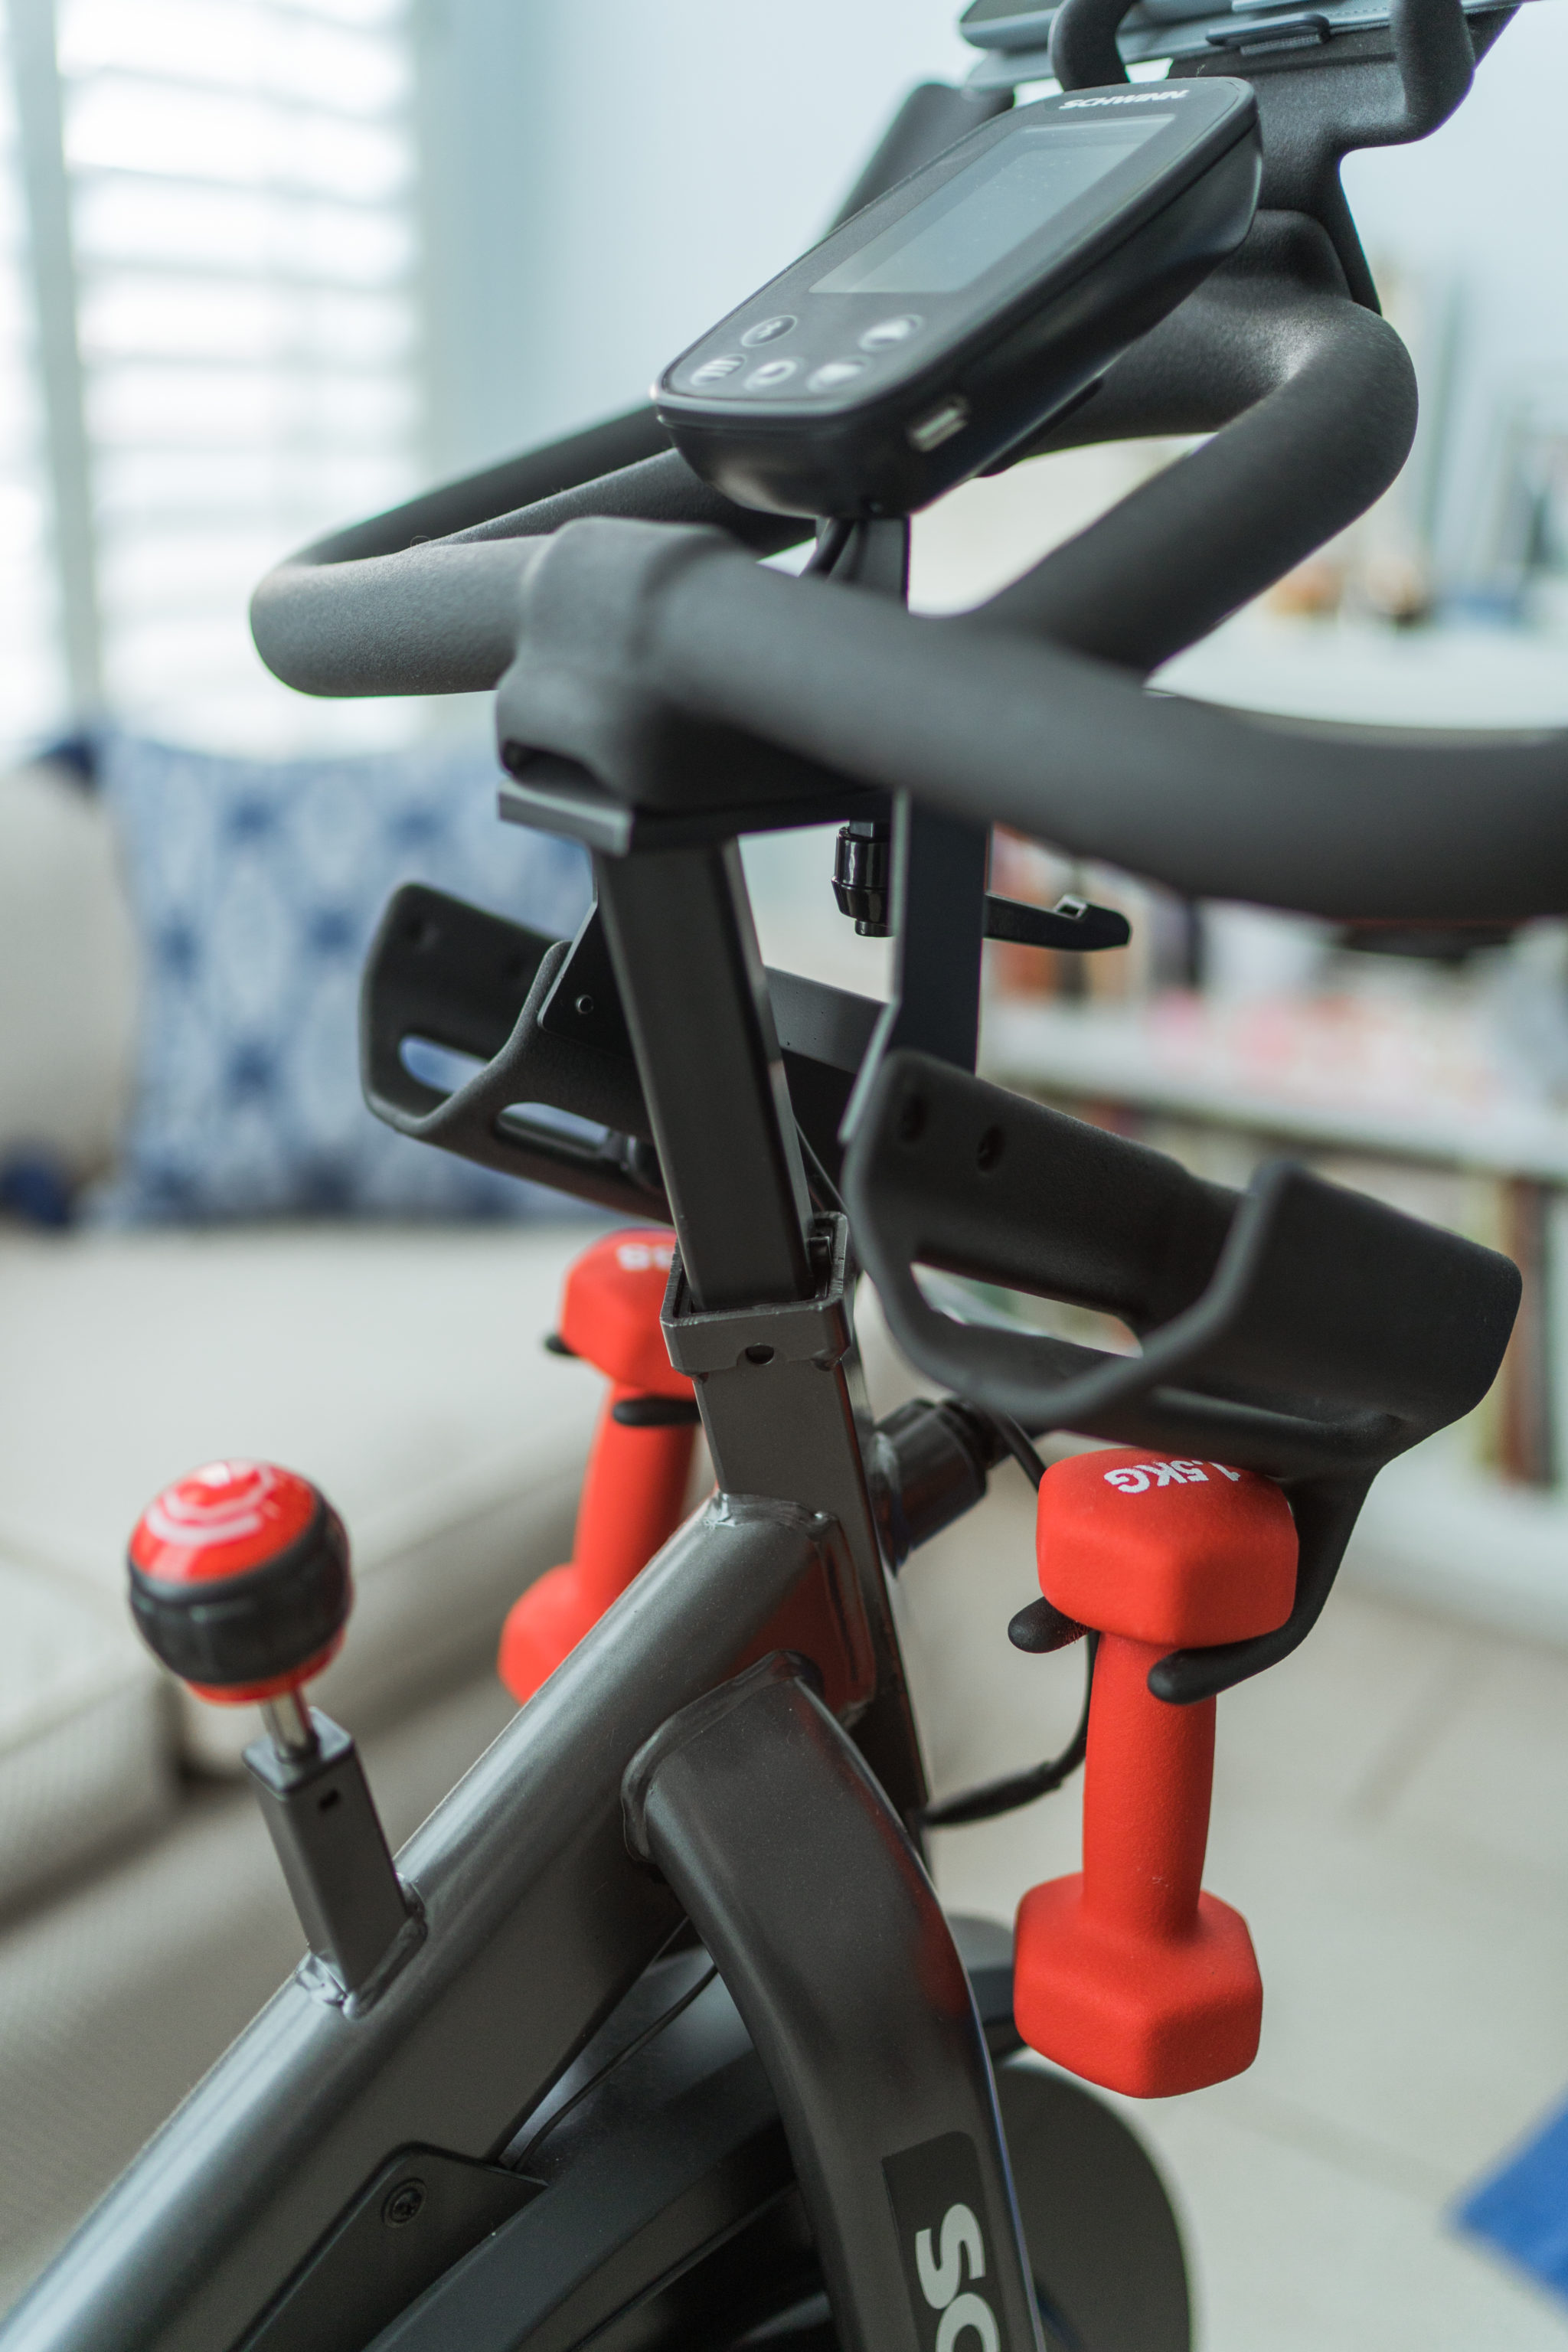 Schwinn IC4 at home spin bike review